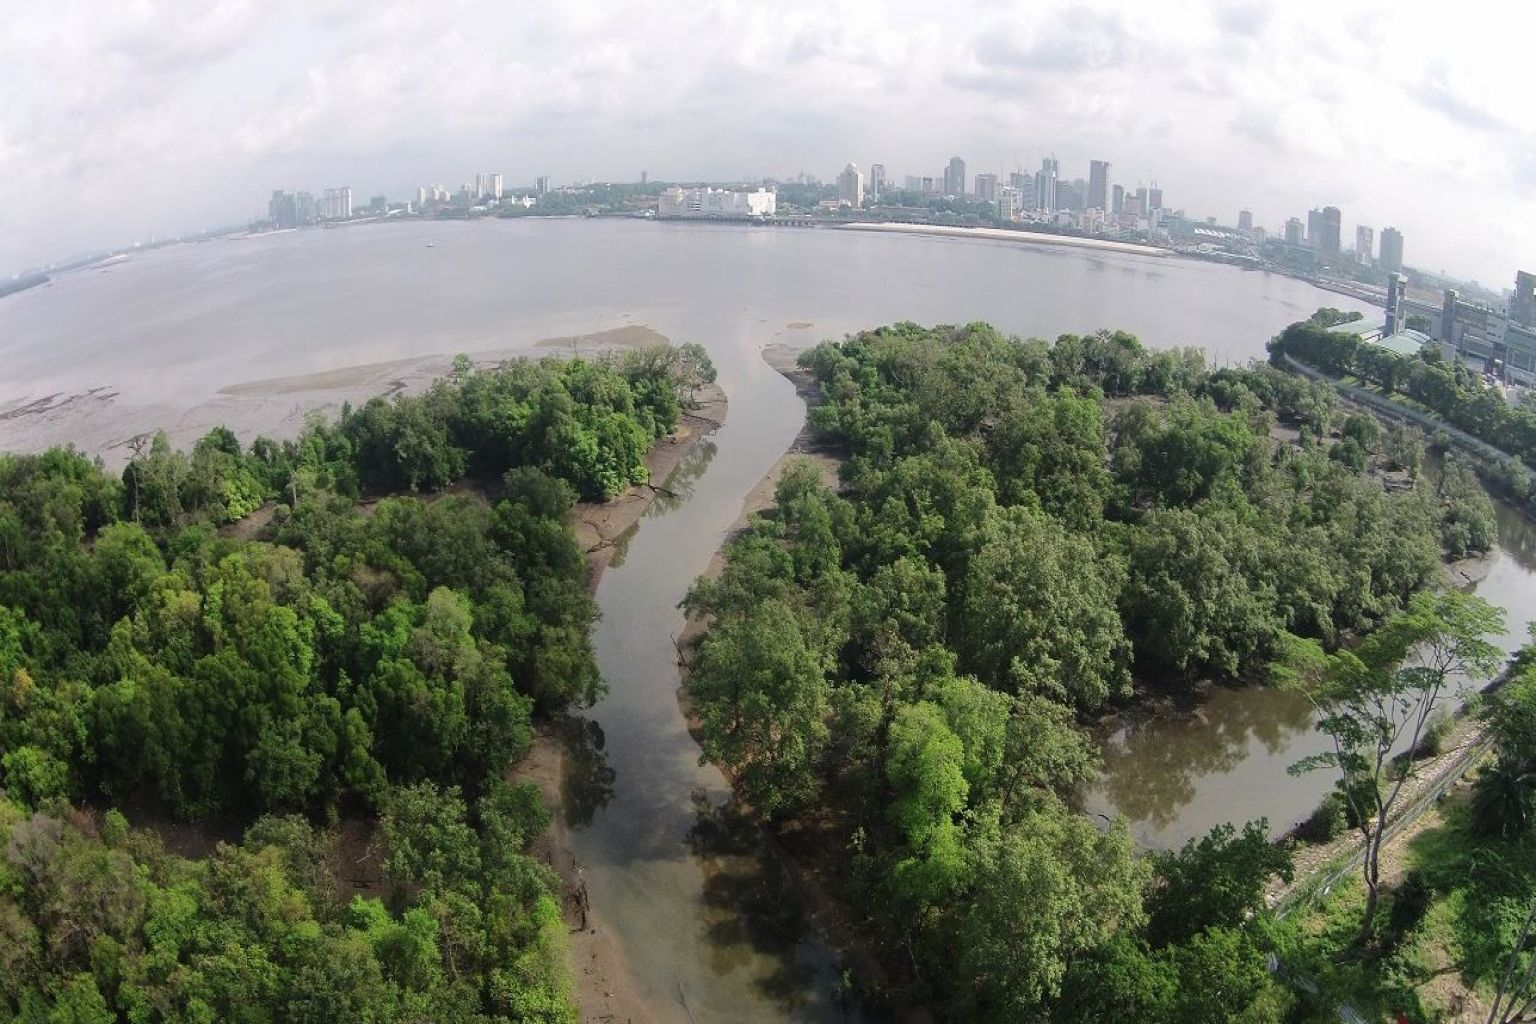 The Mandai Mangrove and Mudflat, opening in 2022, will be Singapore's newest nature park.